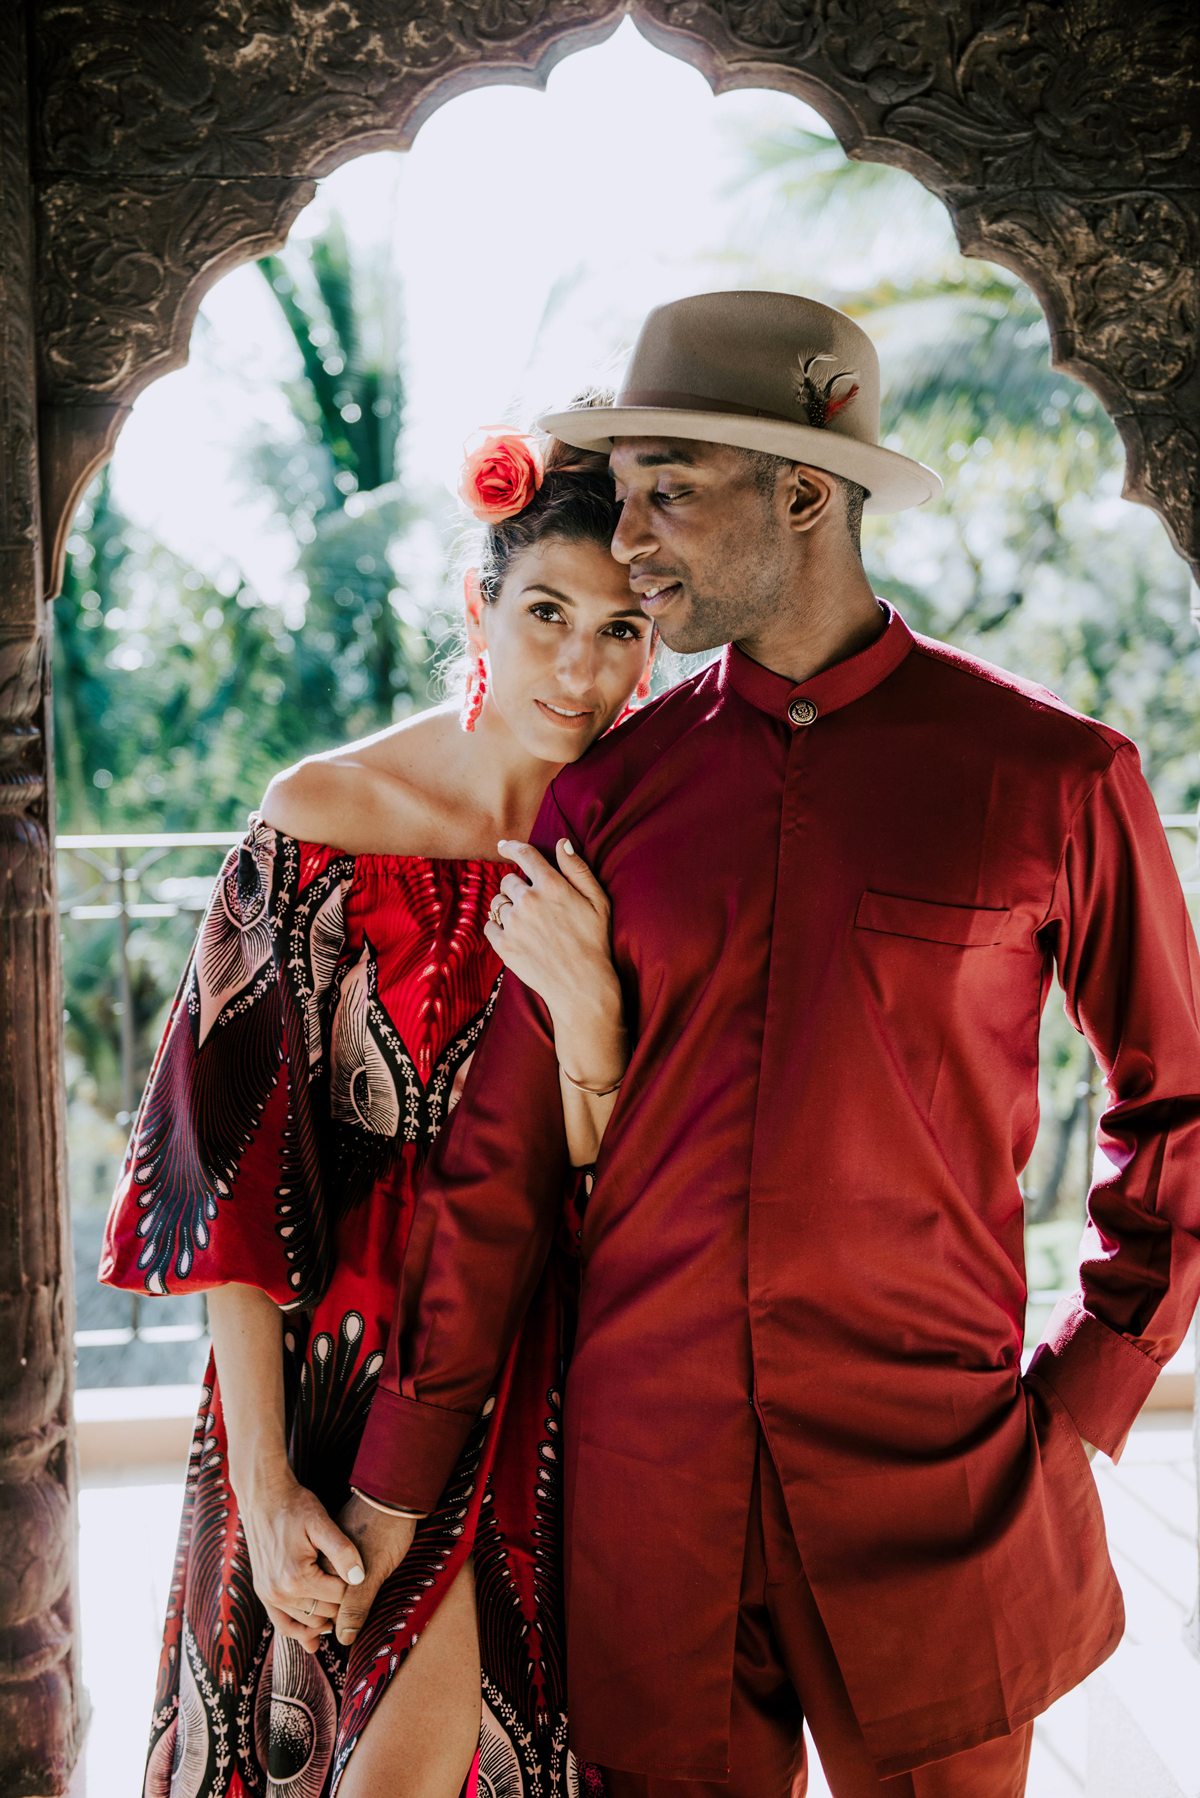 bride and groom pose for portrait photo wearing matching red outfits